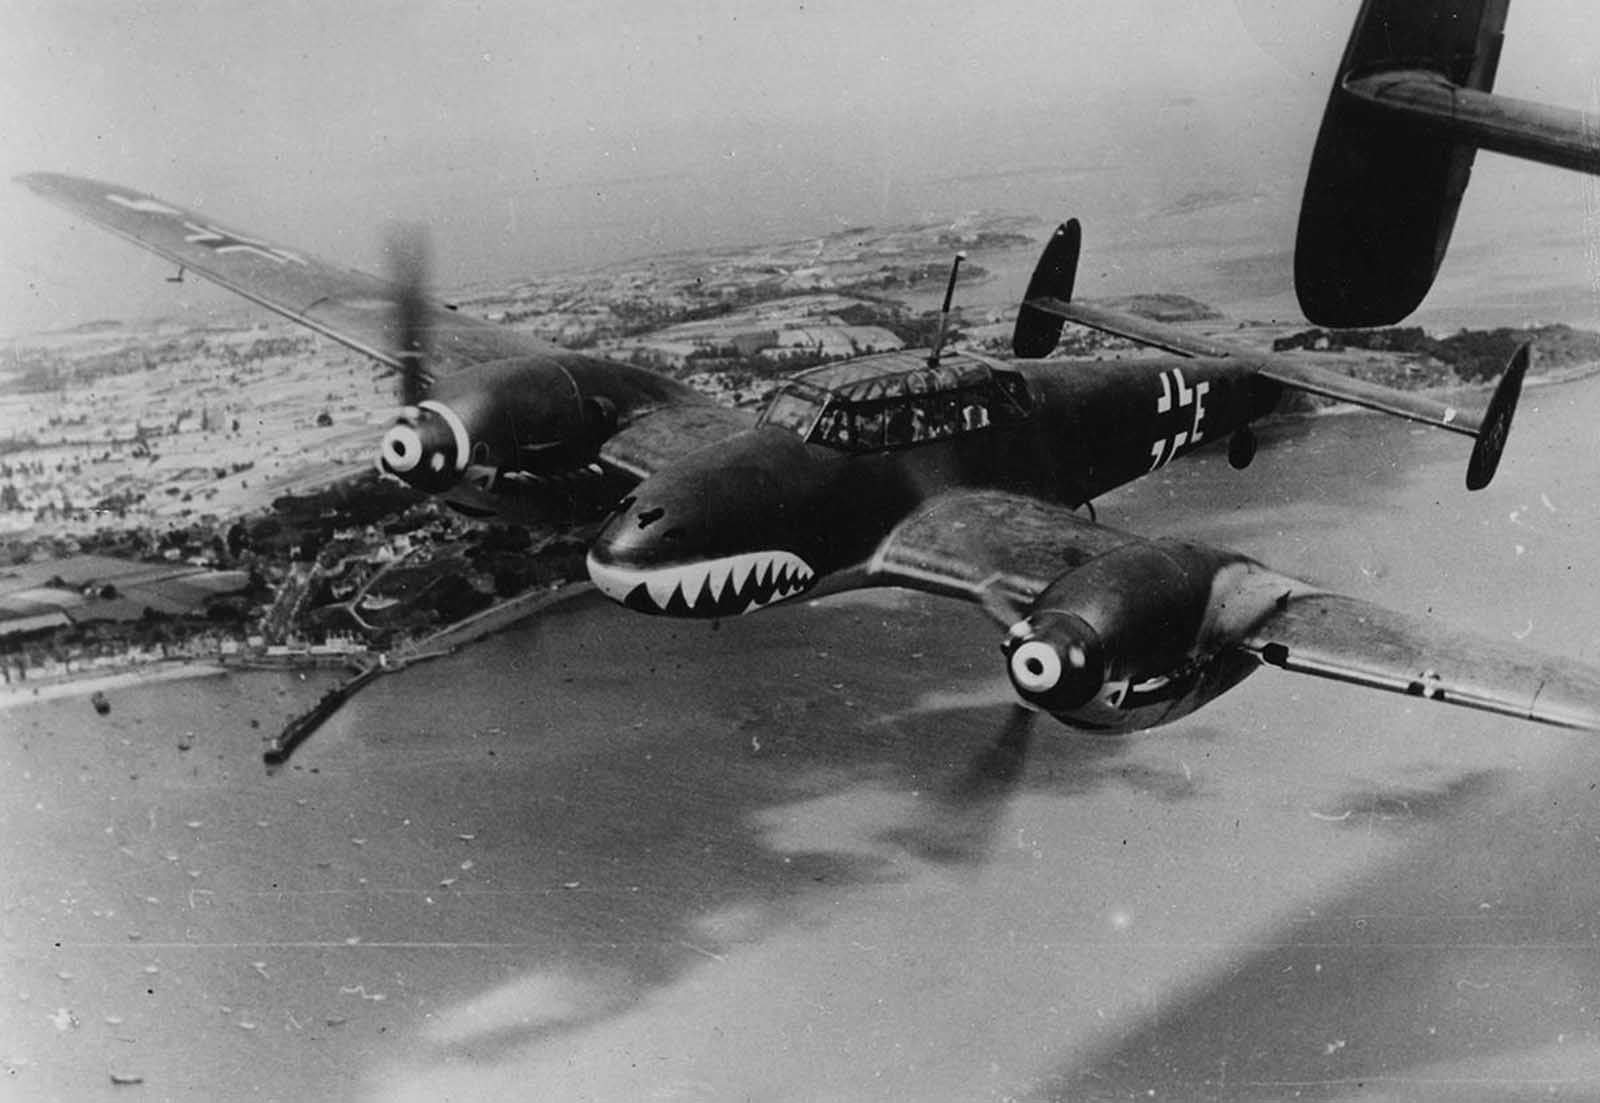 A German twin propelled Messerschmitt BF 110 bomber, nicknamed